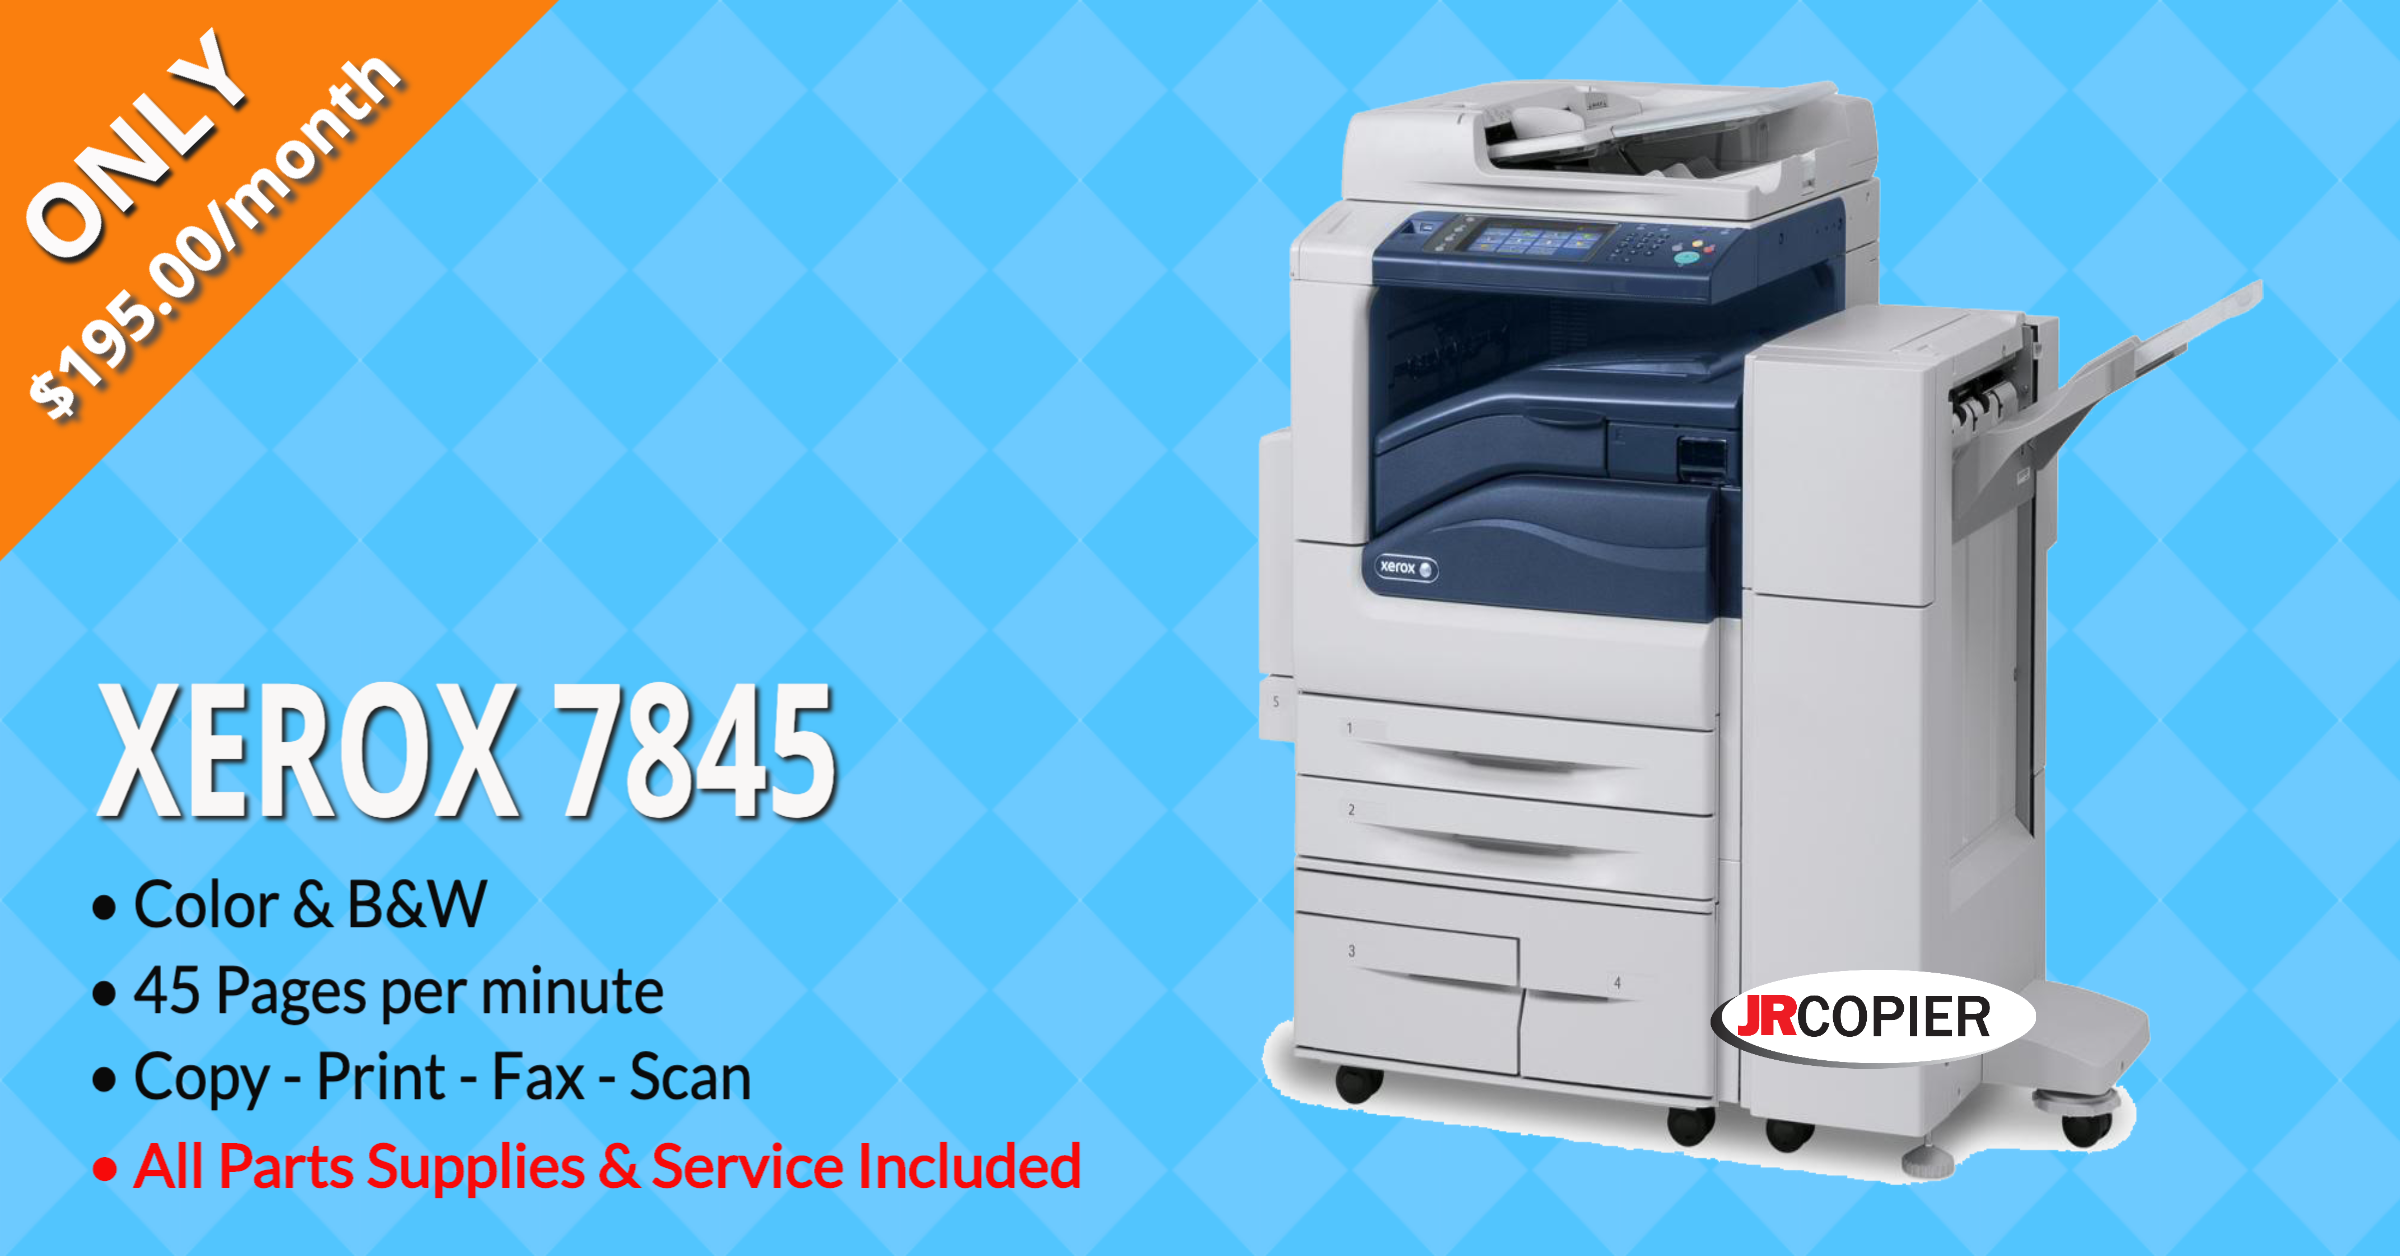 Color Printer 31801, 31808, 31820, 31829, 31901, 31902, 31903, 31904, 31905, 31906, 31907, 31908, 31909, 31914, 31917, 31993, 31997, 31998, 31999